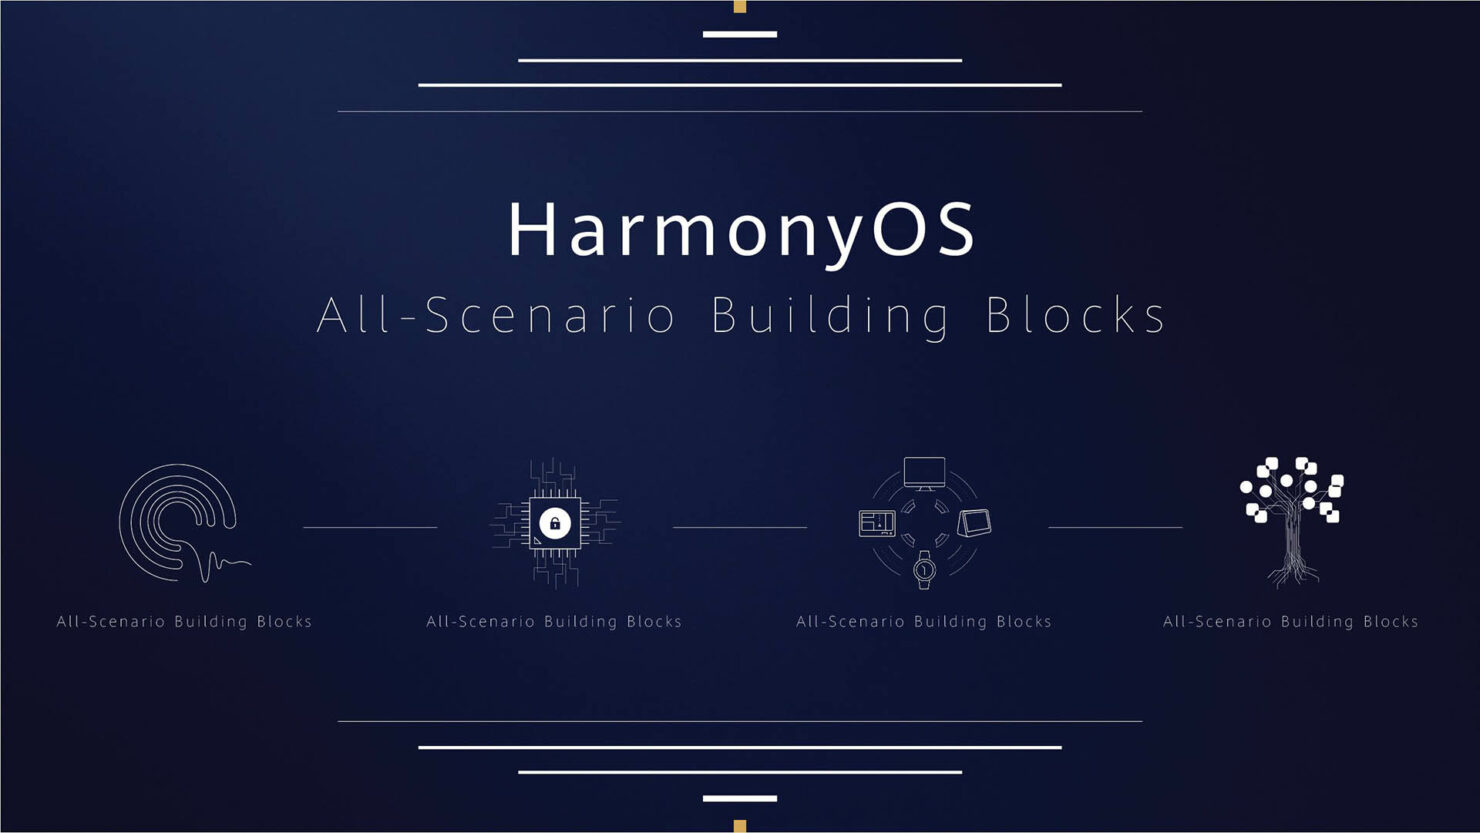 Huawei executive states the company's HarmonyOS could soon run on devices like smartwatches and laptops